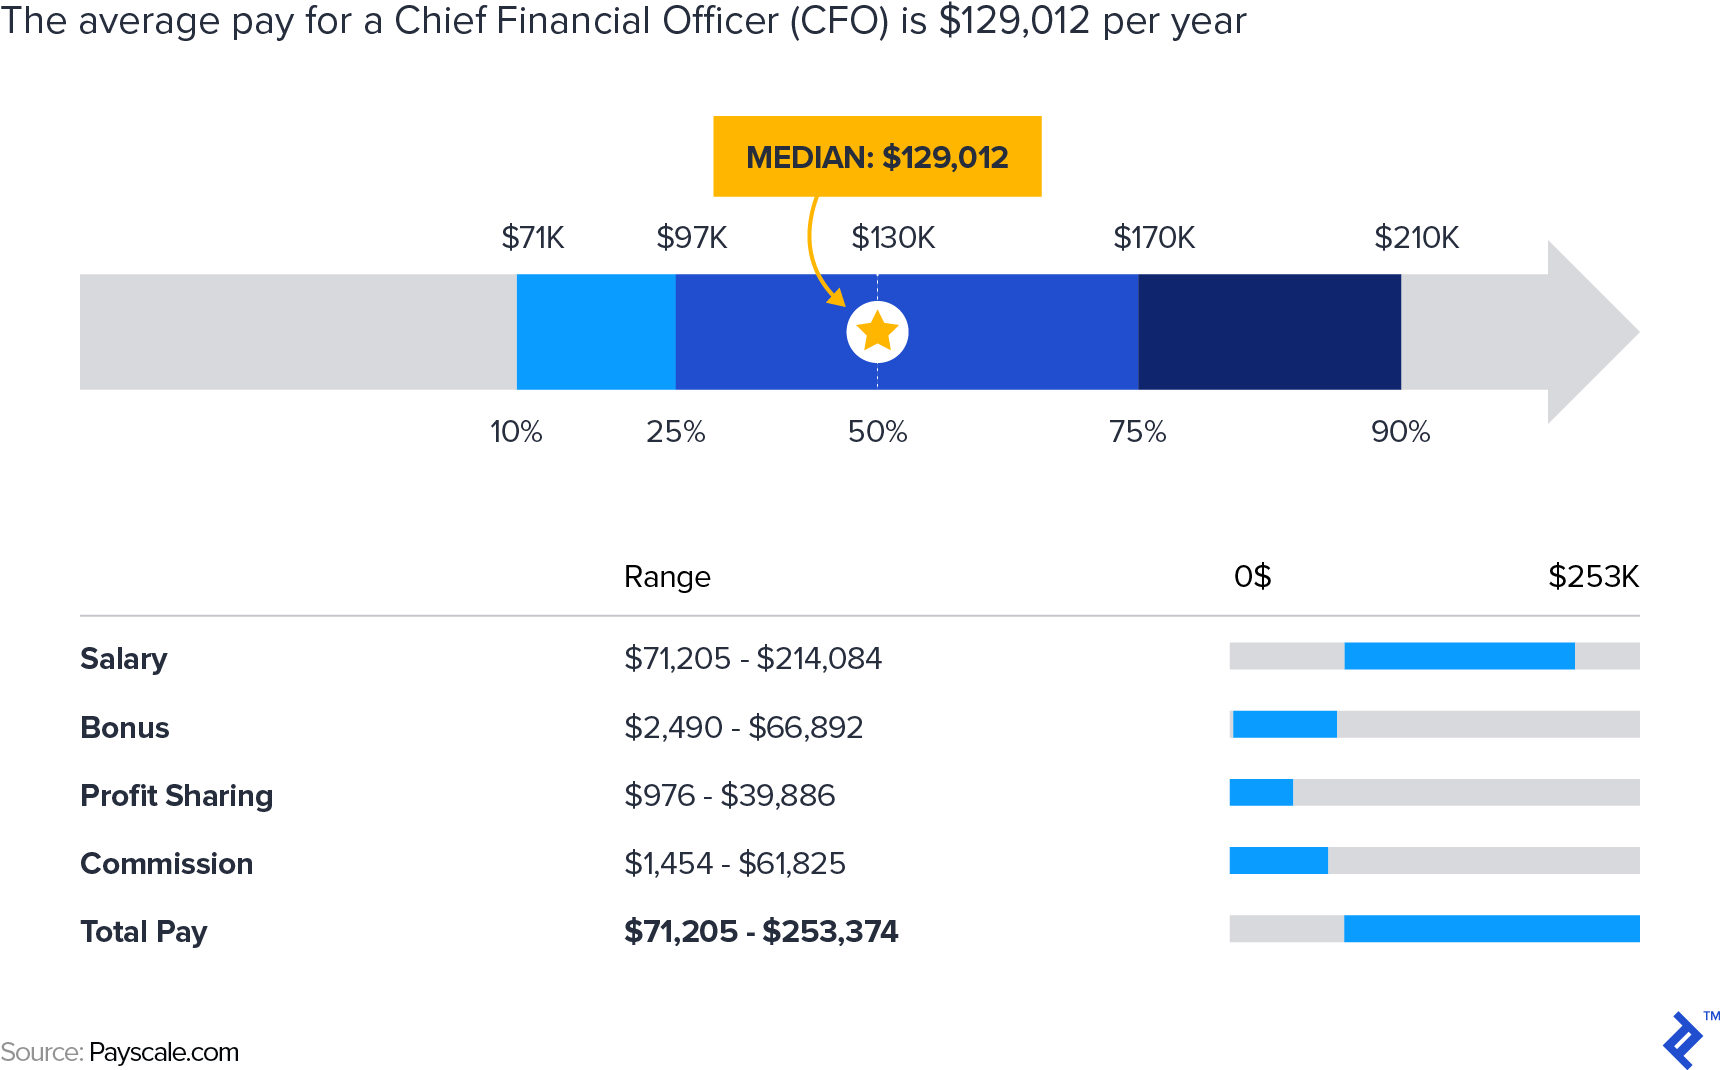 The average pay for a Chief Financial Officer is just short of a hundred and thirty thousand dollars annually.